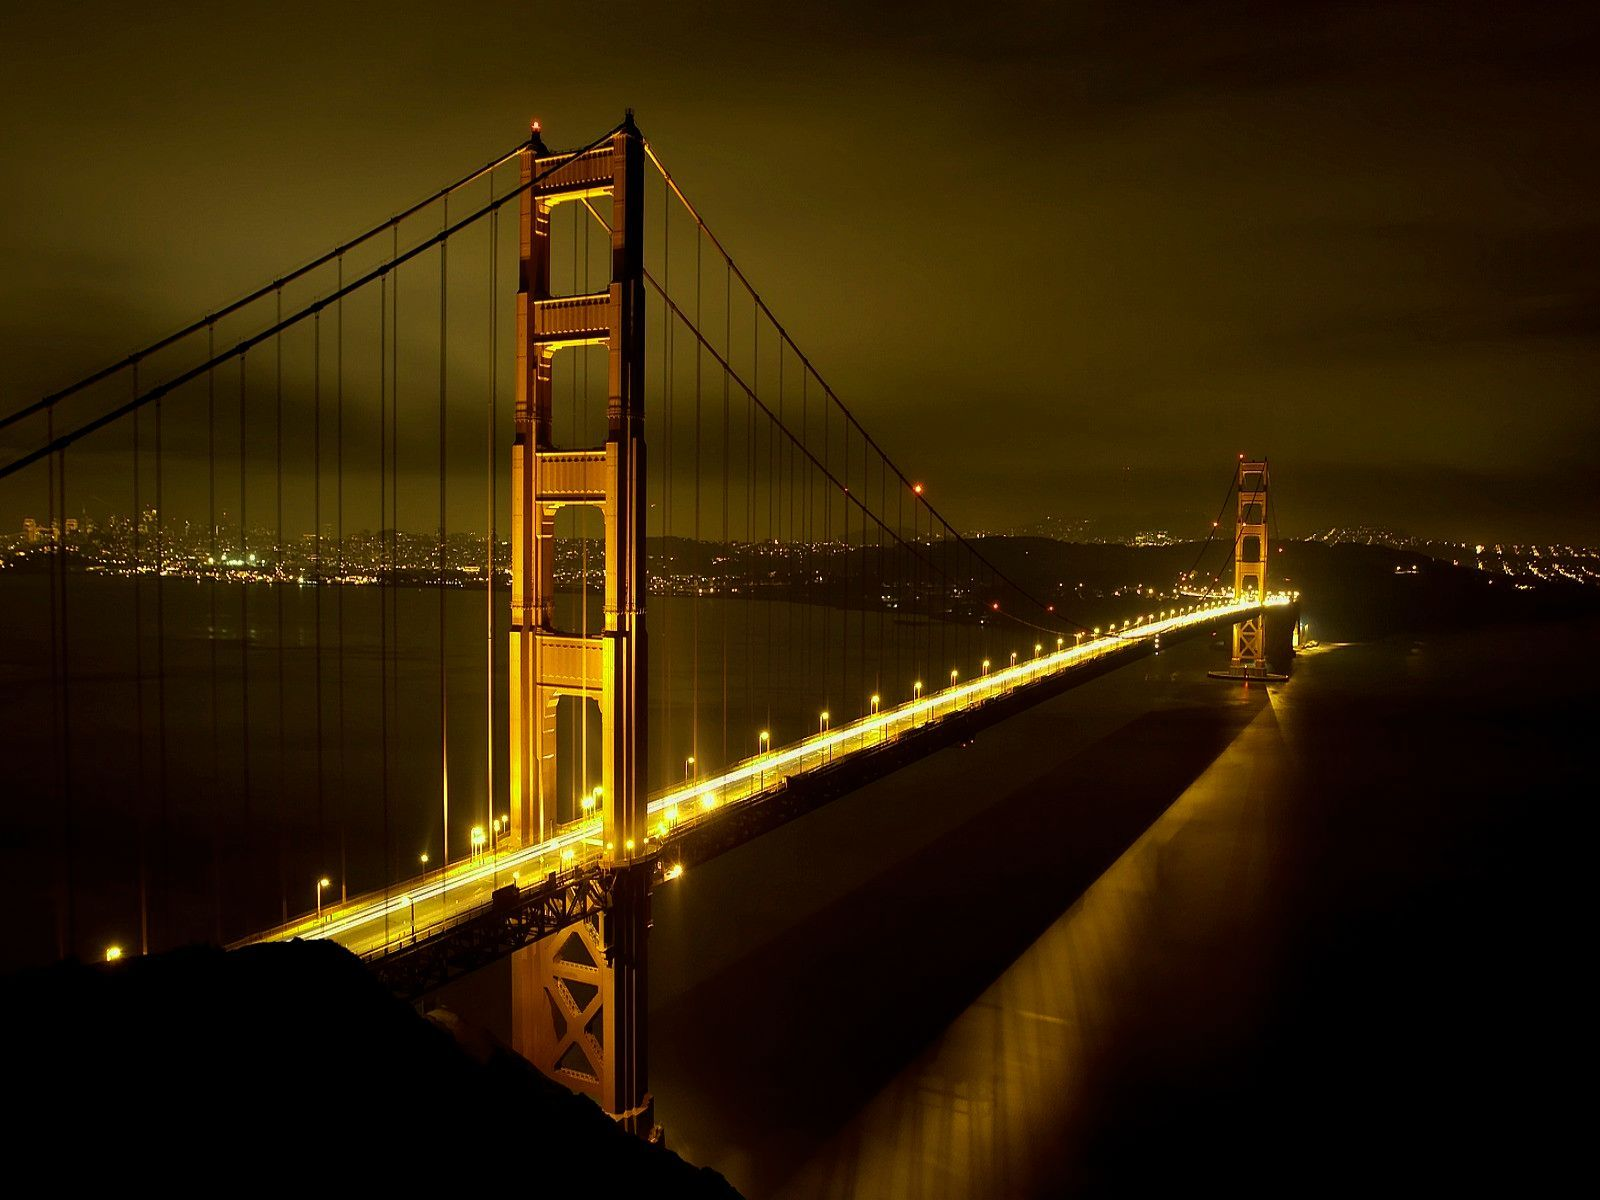 Undefined Worlds Best Wallpaper 65 Wallpapers Adorable Wallpapers San Francisco Golden Gate Bridge Golden Gate Bridge Bridge Wallpaper